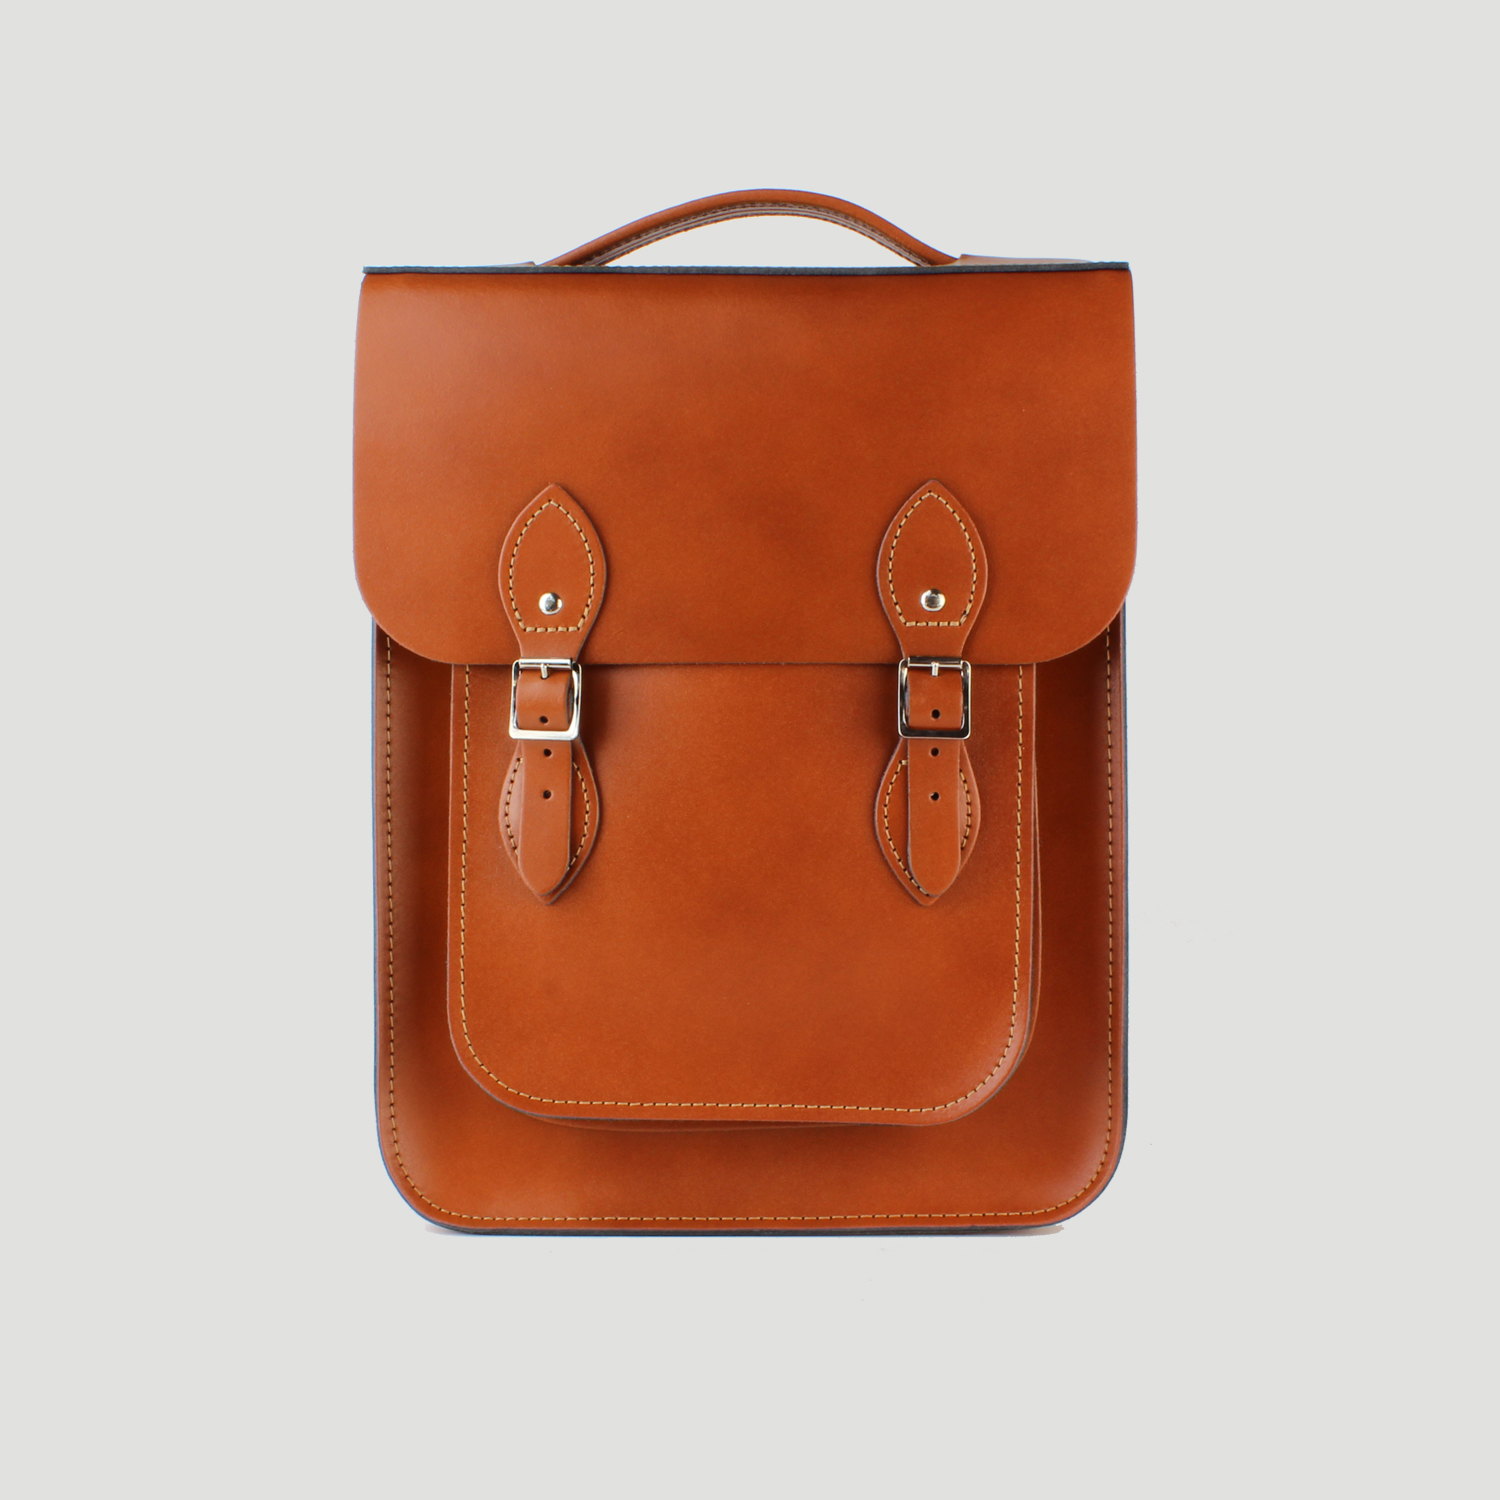 20e869c562 Portrait Leather Backpack made from London Tan Leather – Bowland Clothing  Limited